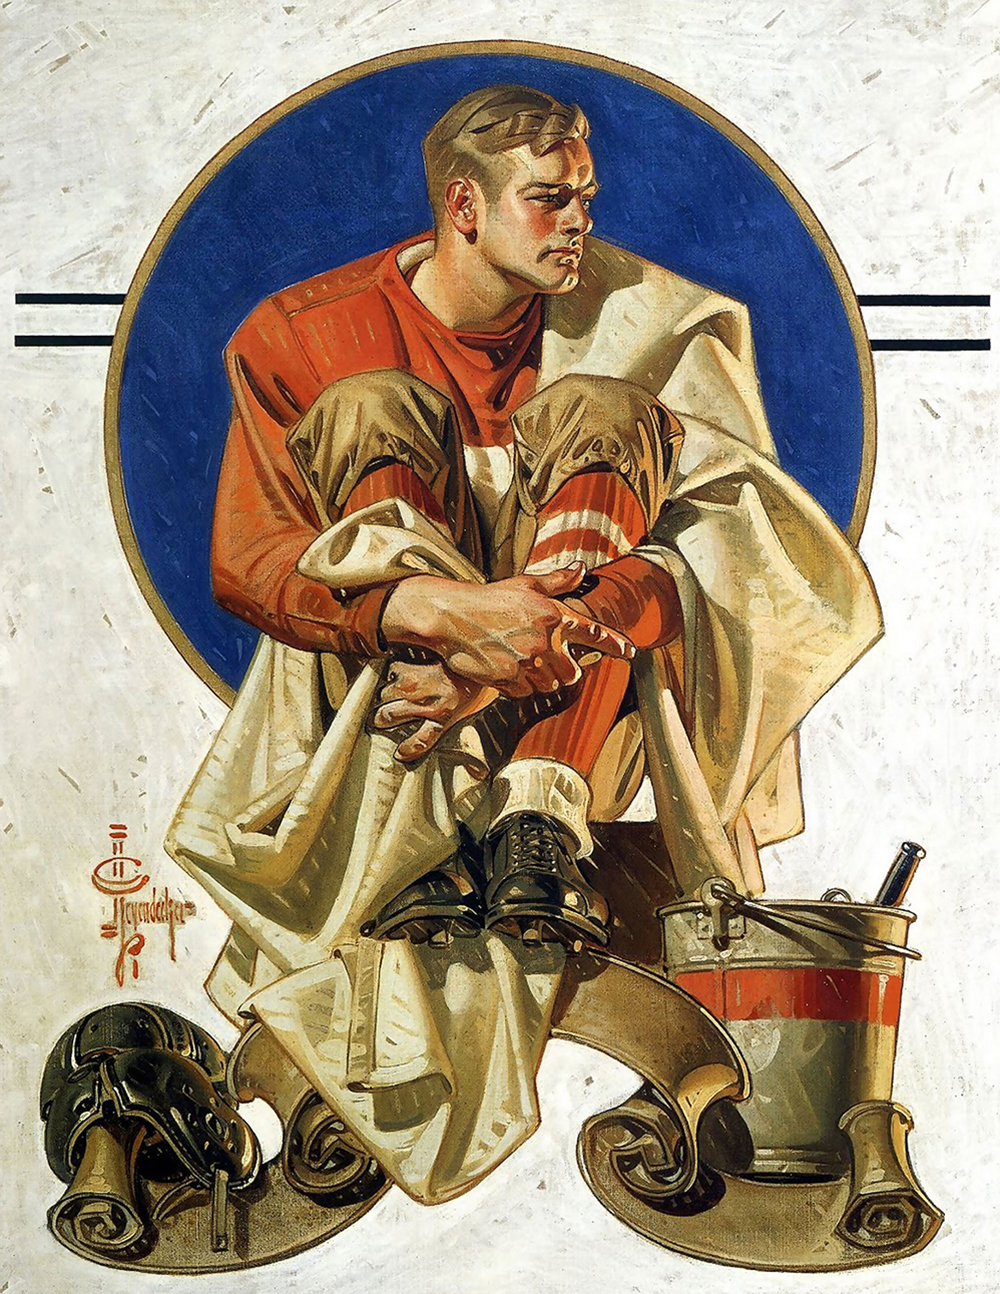 Football Player, by J.C. Leyendecker, from The Saturday Evening Post. Wikimedia Commons.